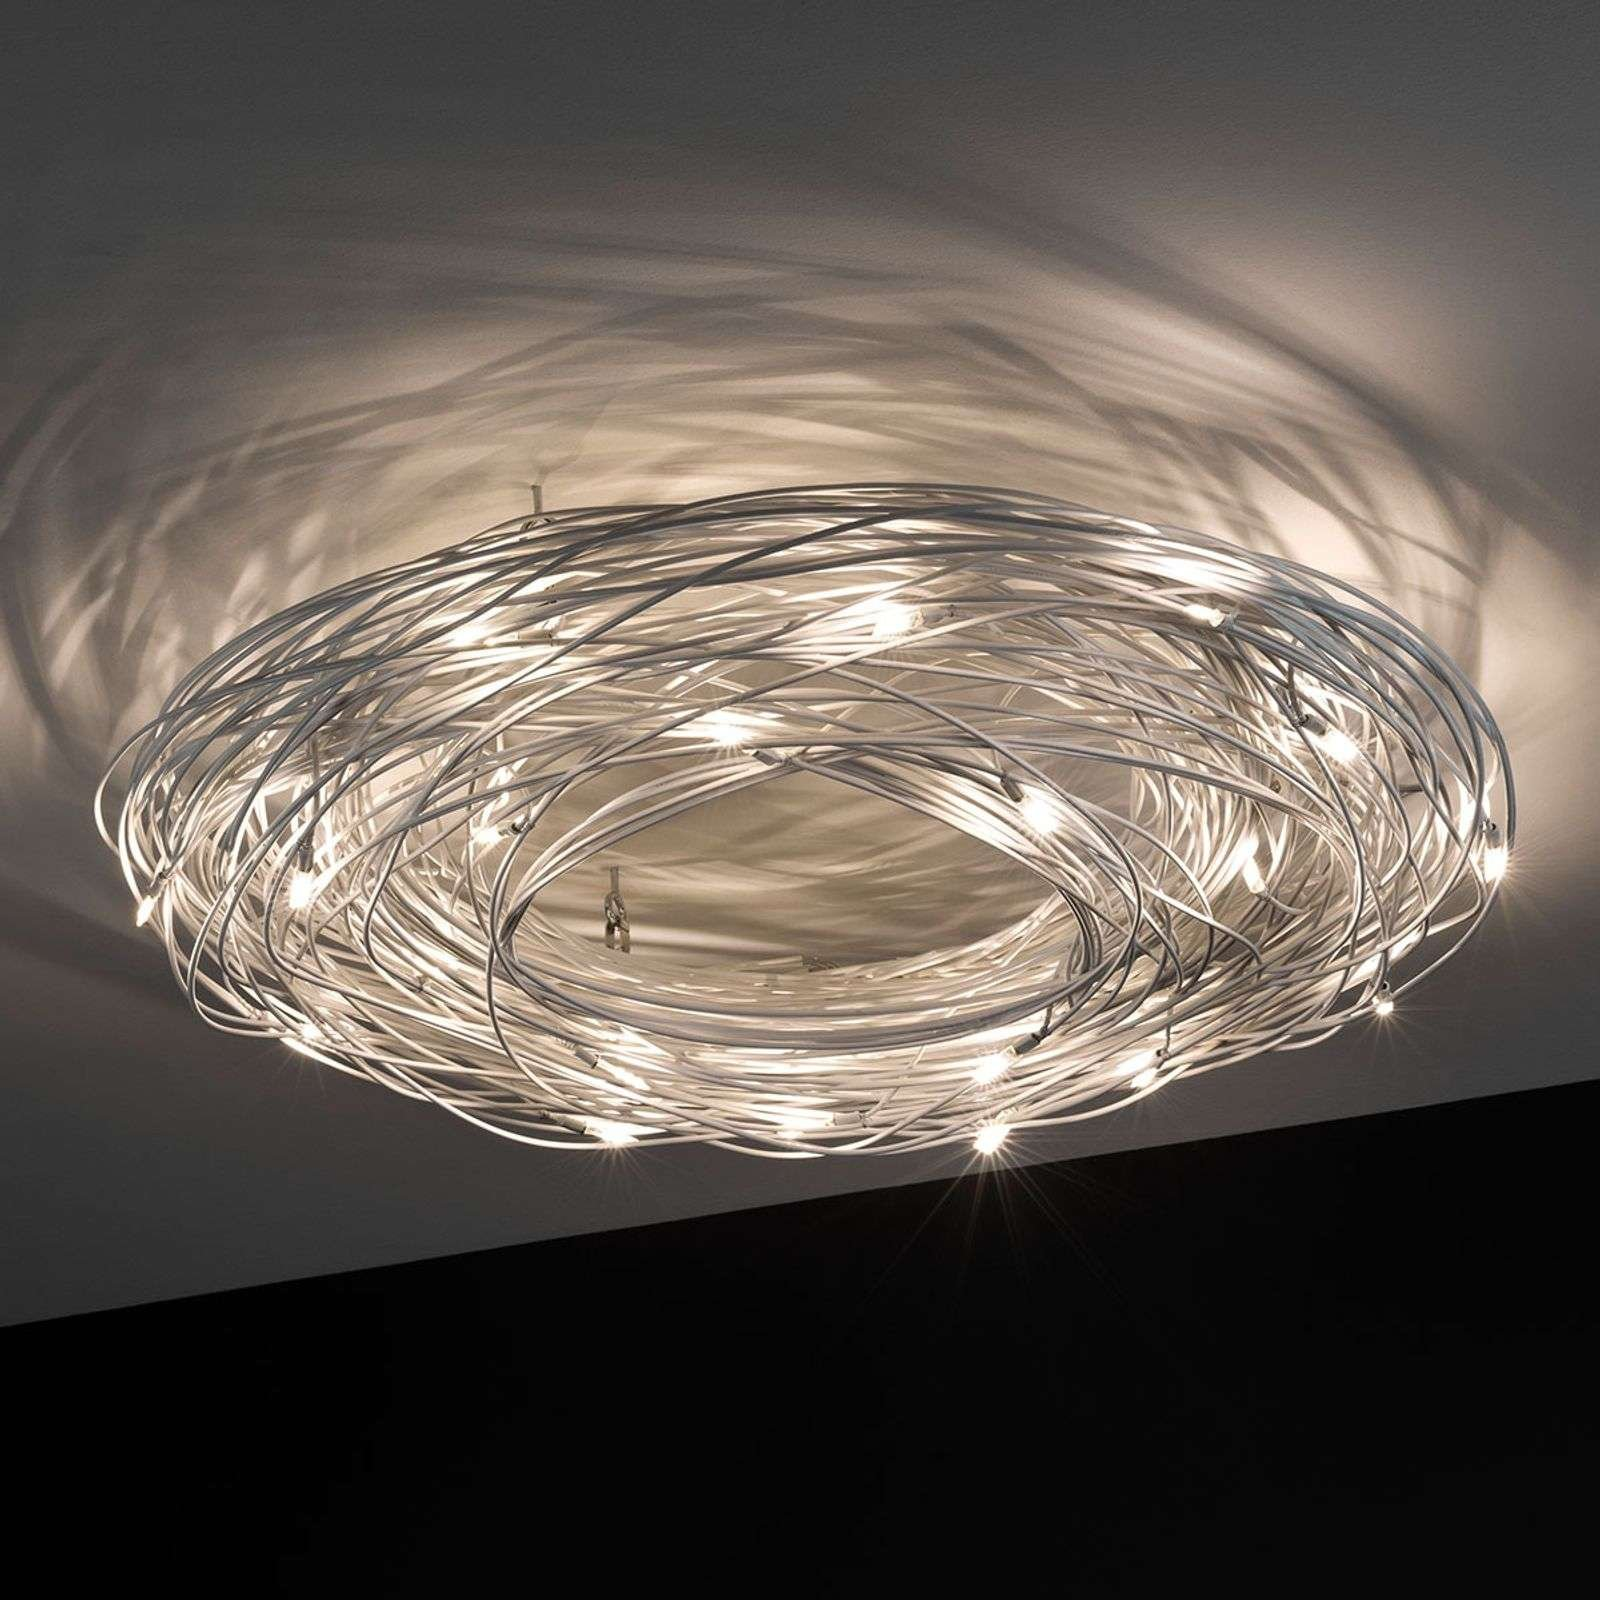 Knikerboker Confusione LED ceiling light  20 bulb